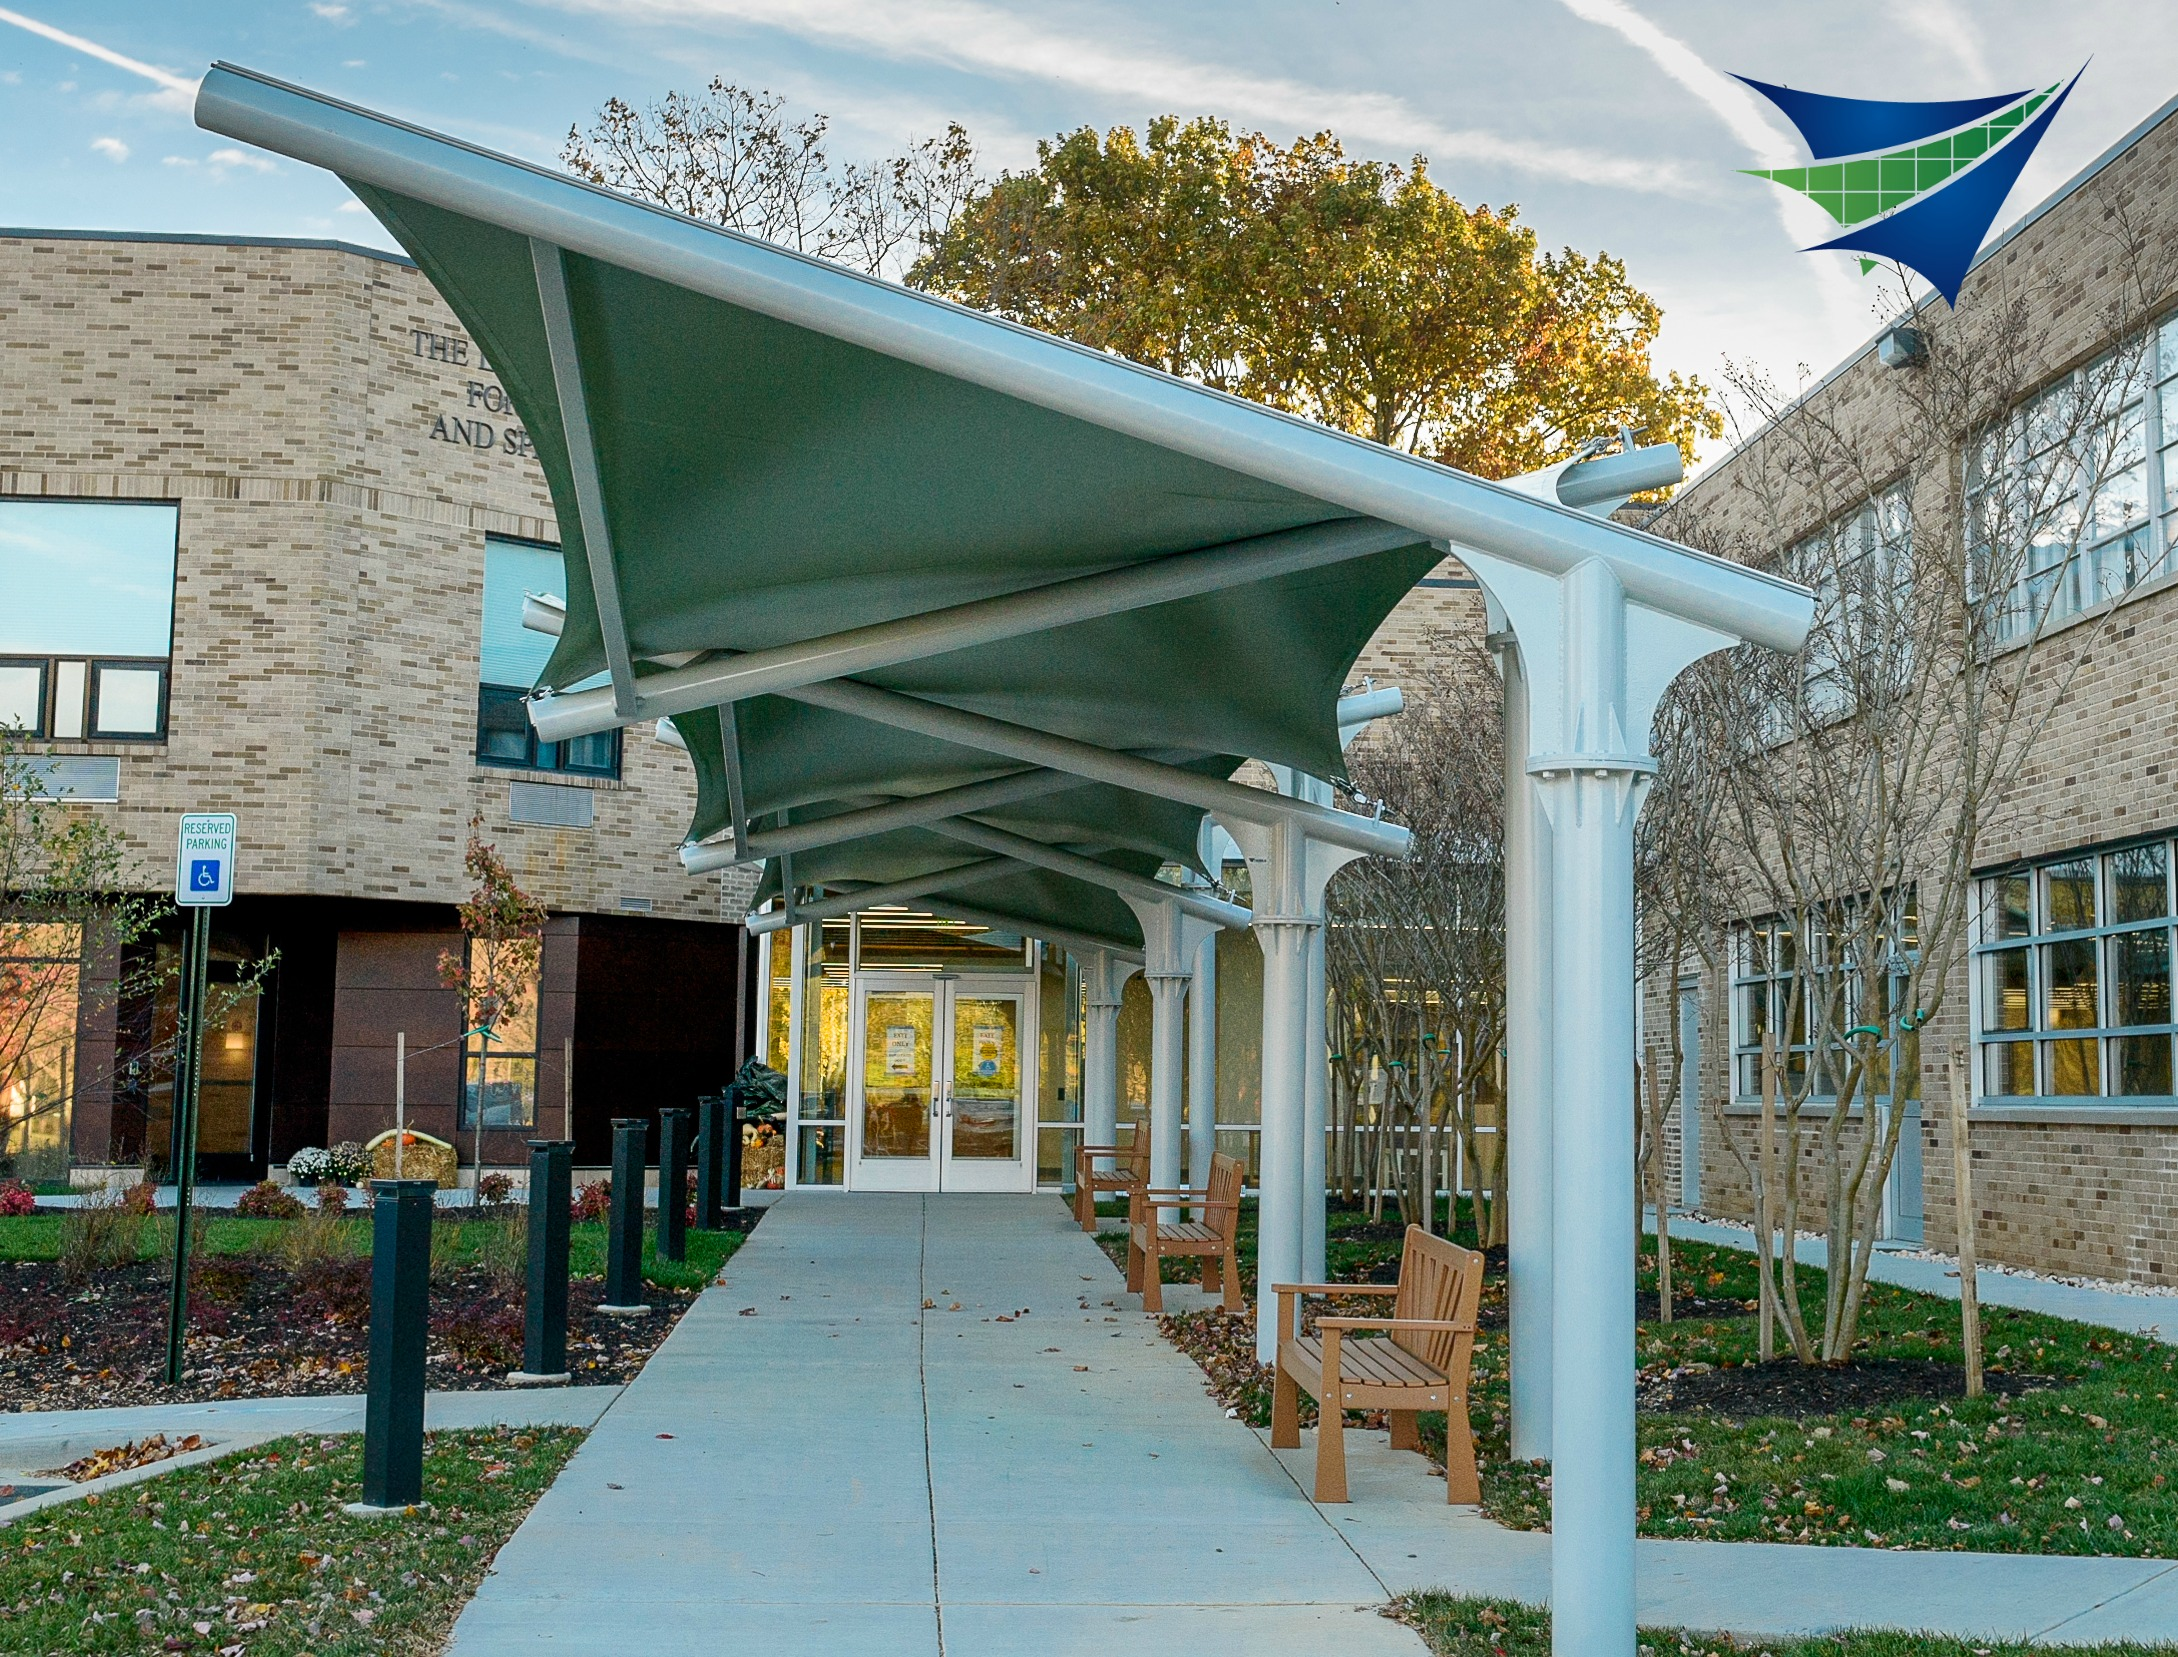 New Main Entrance Canopy for School in Maryland & Maryland School Canopy -